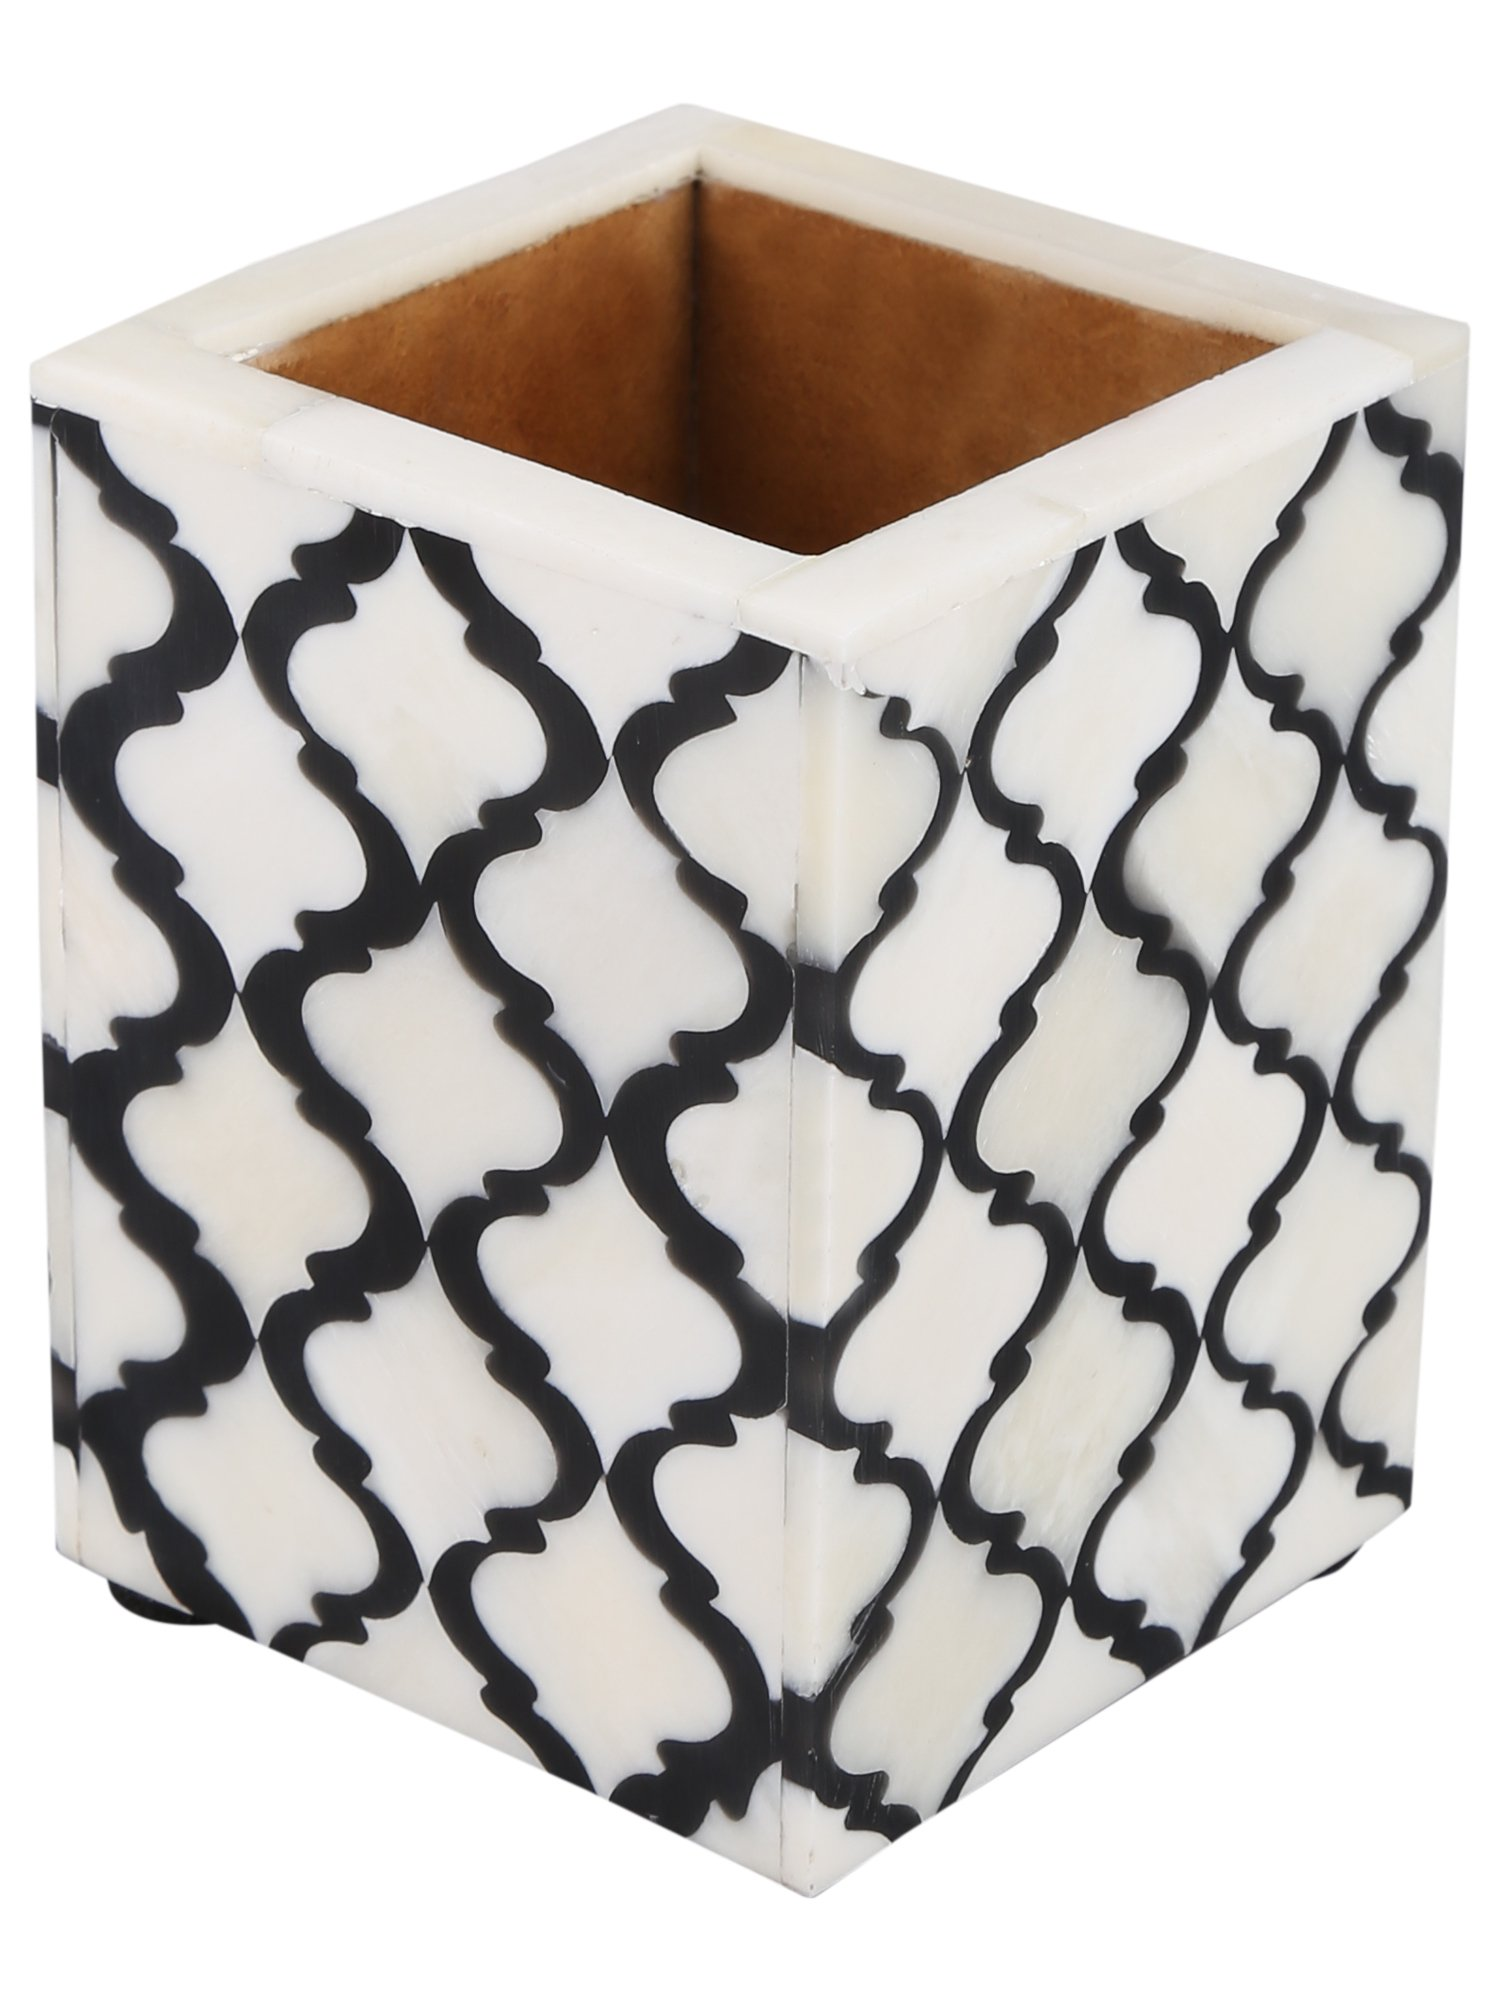 Moroccan & Moorish Art Inspired Desktop Pen & Pencil Holder Cups Office Supplies Organizer Caddy from Handicrafts Home (4x3x4 inches, Black)